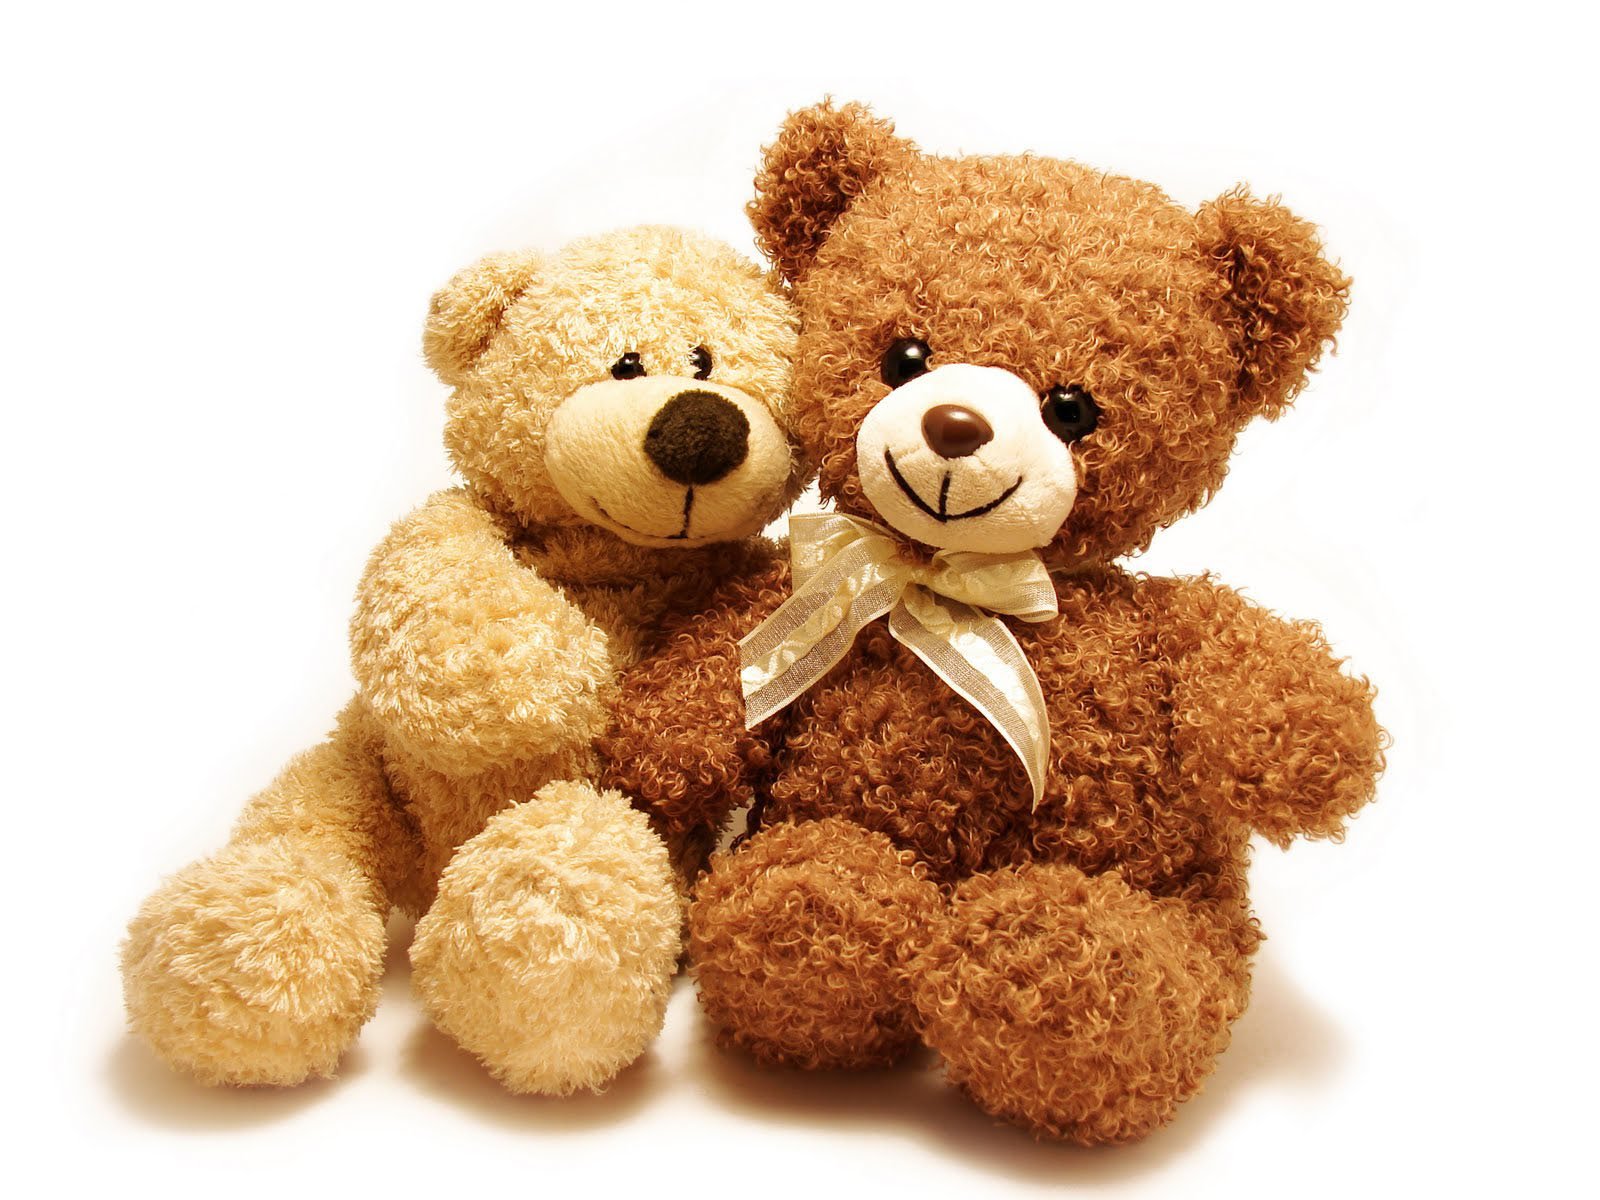 Teddy Bear Wallpaper Download